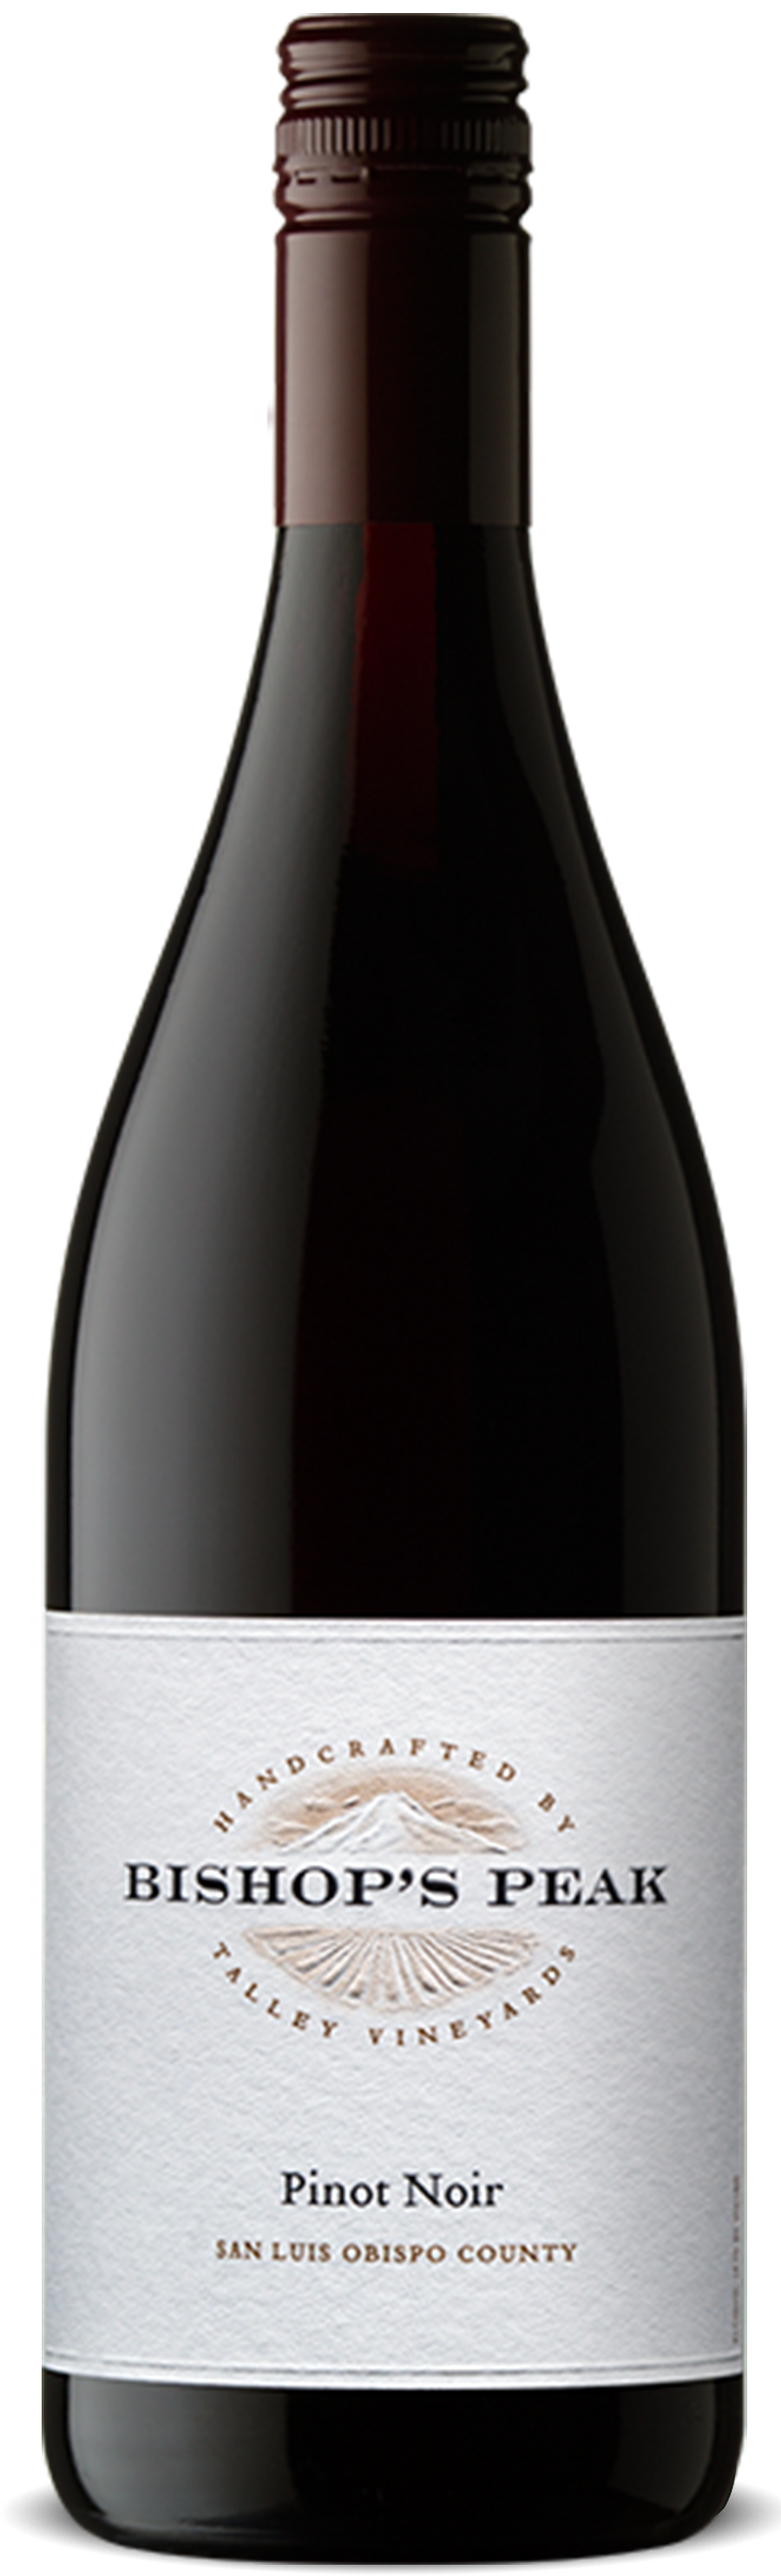 A bottle of Bishop's Peak Pinot Noir made by Talley Vineyards.